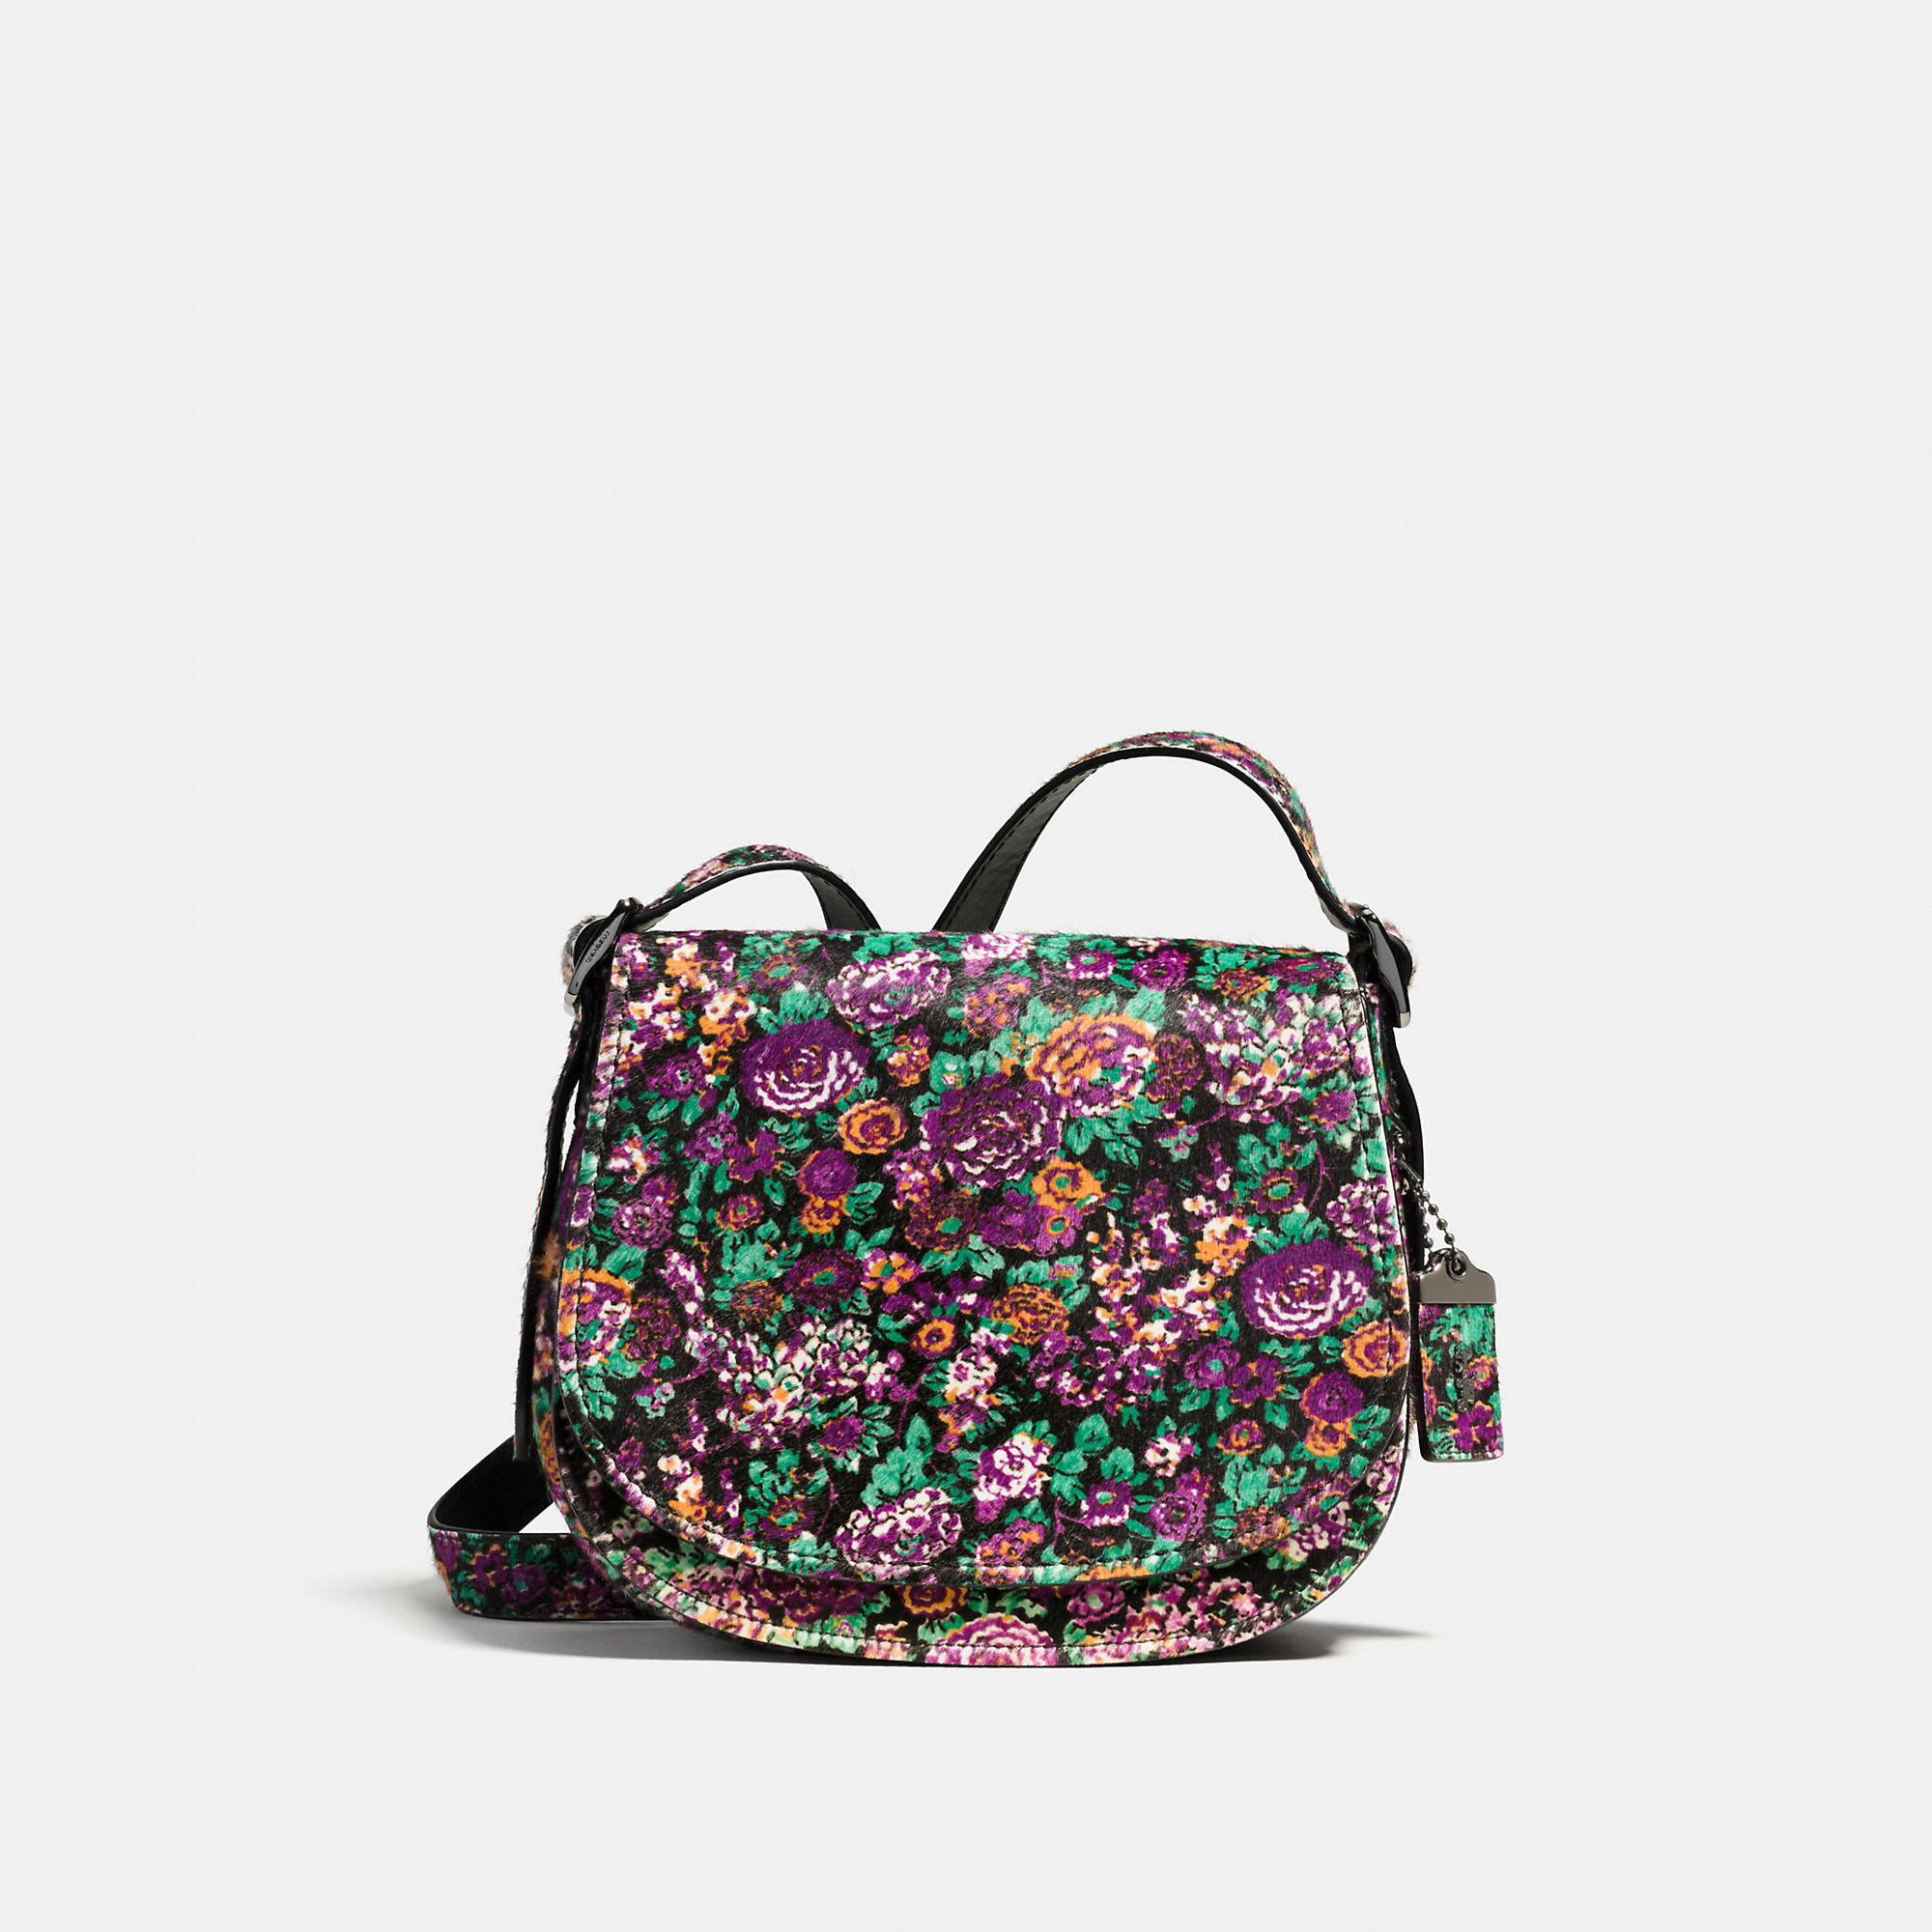 Coach 1941 Saddle Bag 23 In Printed Haircalf